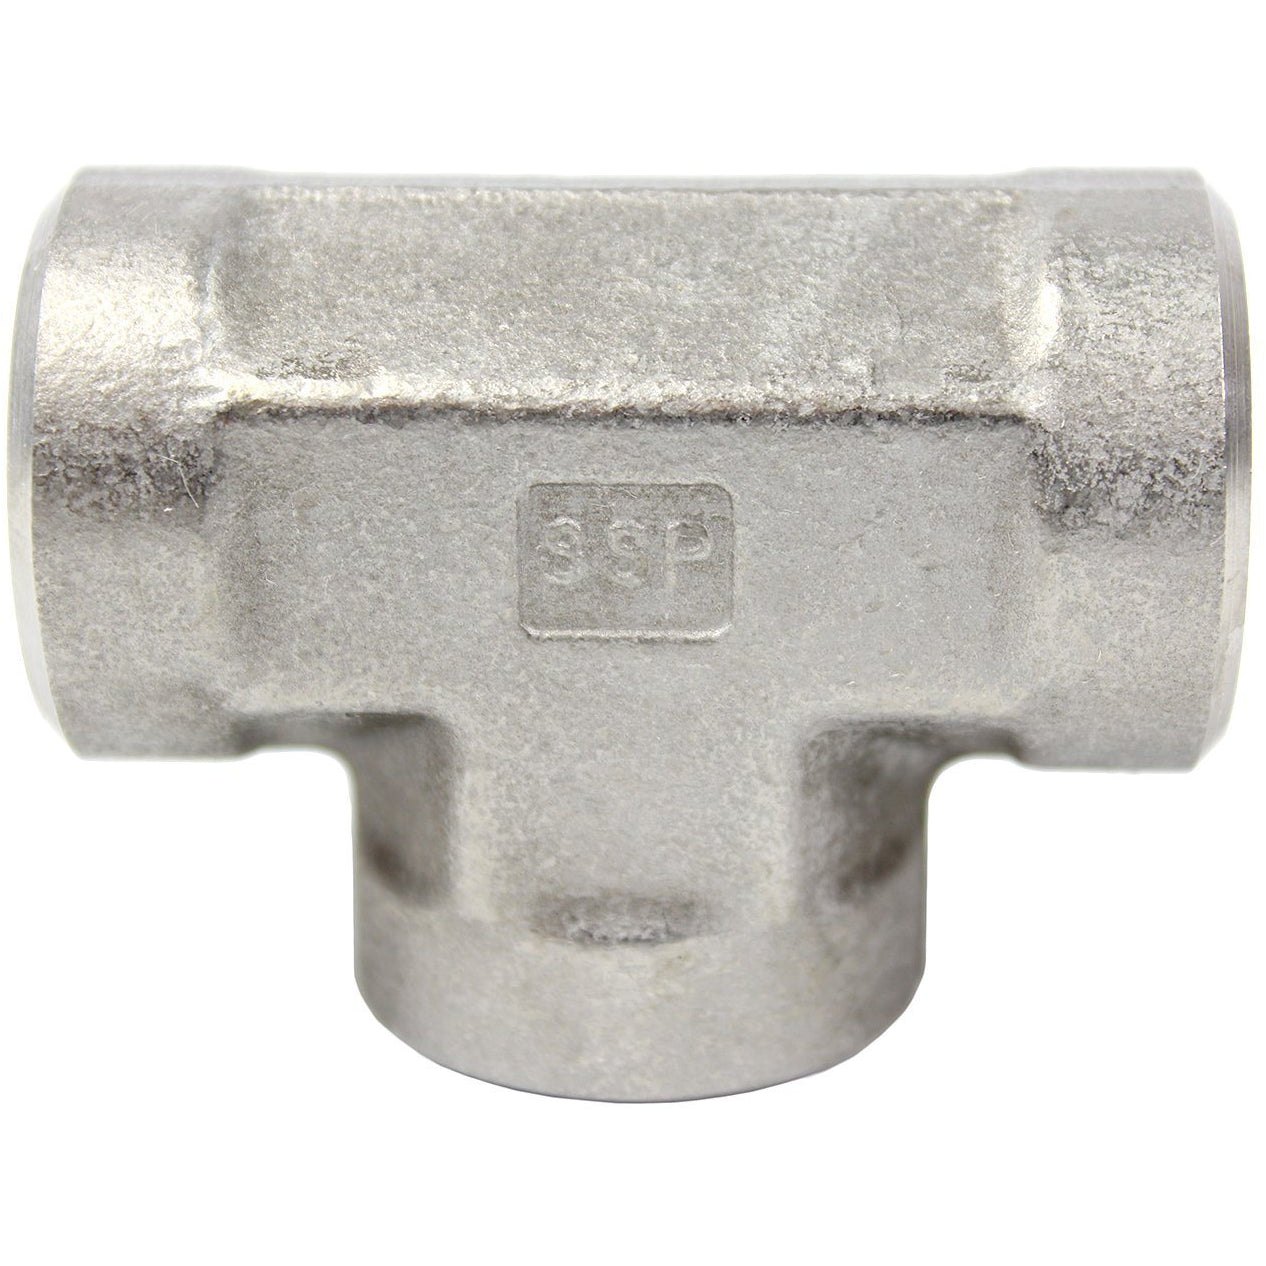 SSP - Pipe Tee Shop All Categories SSP Corporation 1/4-inch